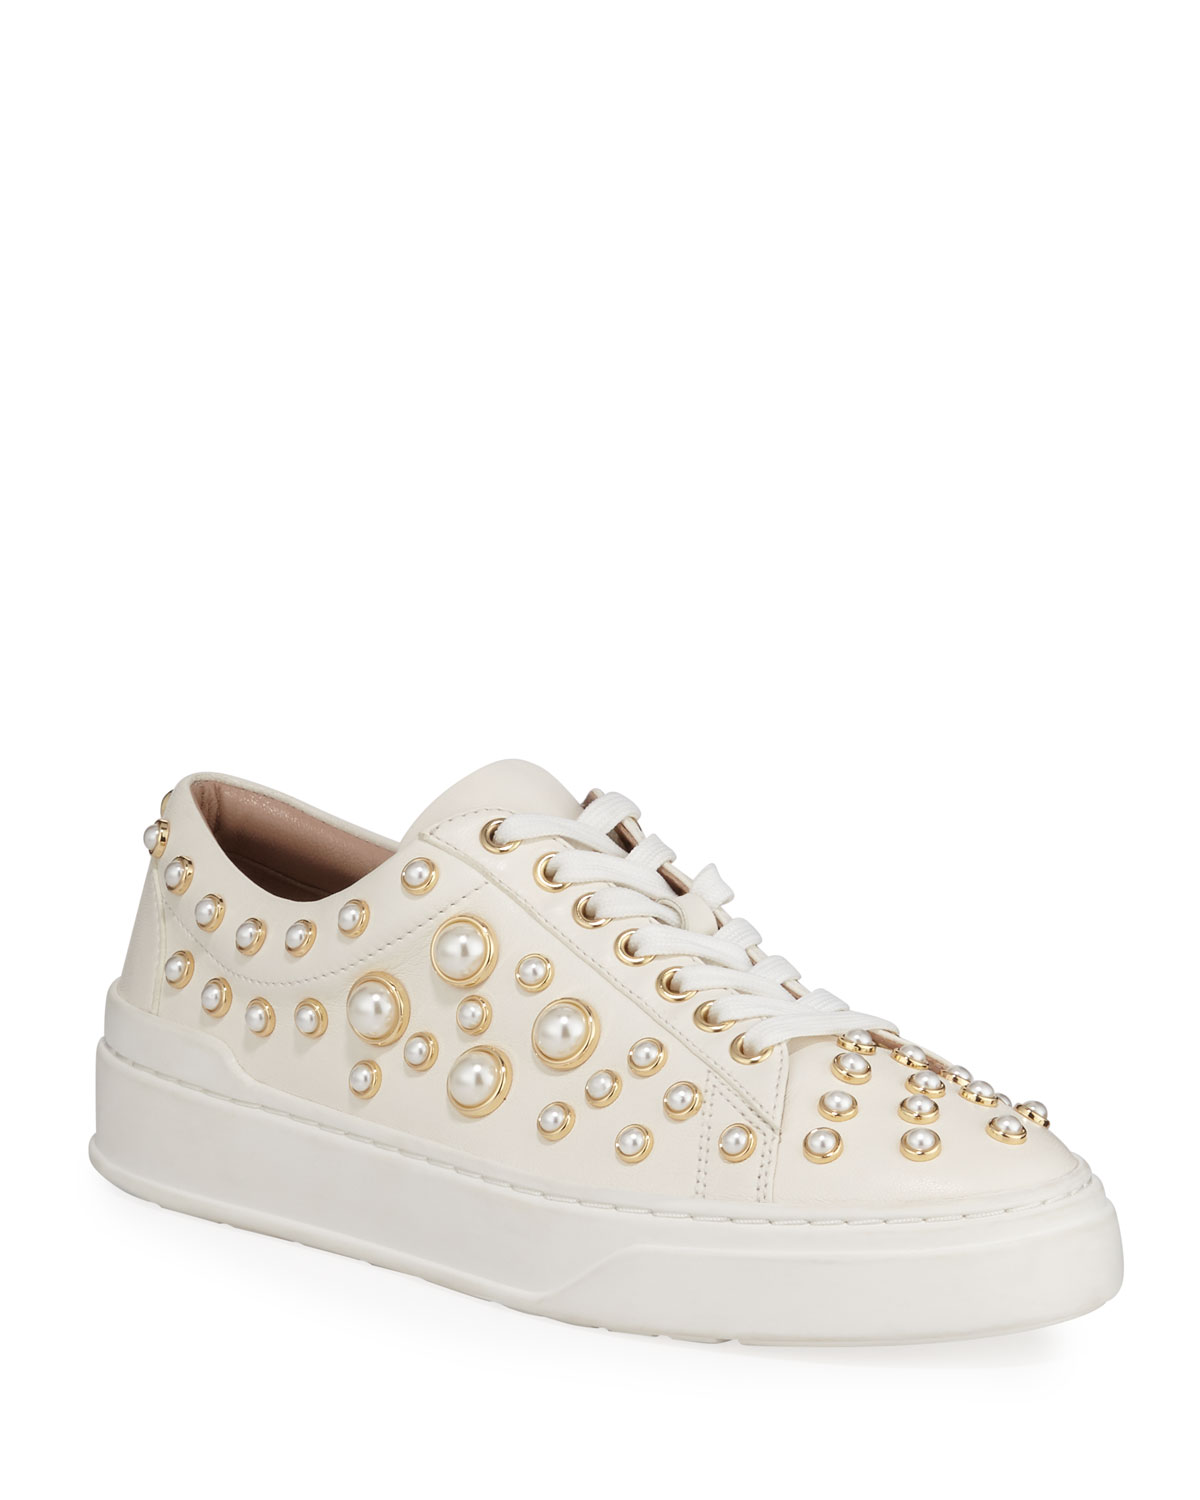 Pearline Platform Lace-Up Sneakers